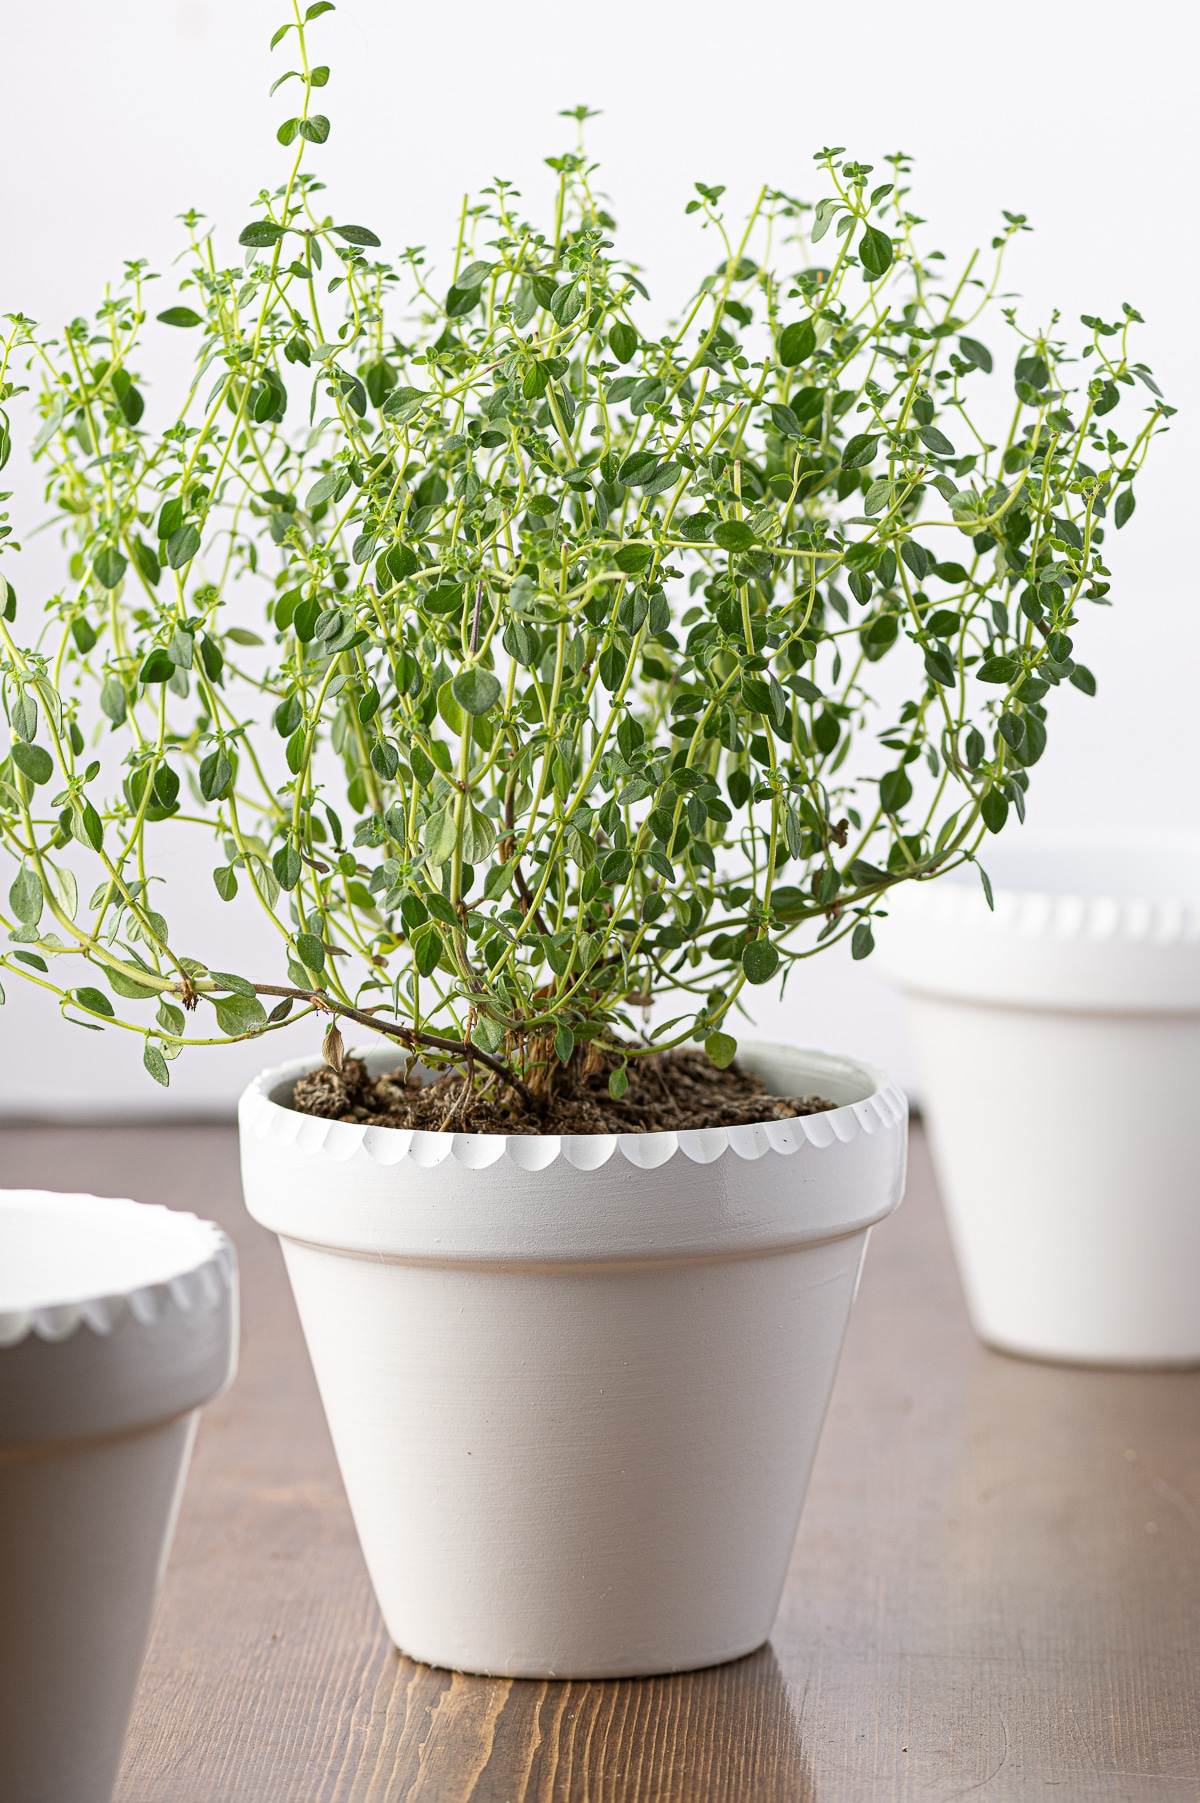 Shiny painted herb pots with scalloped edges with a small bright green thyme plant.